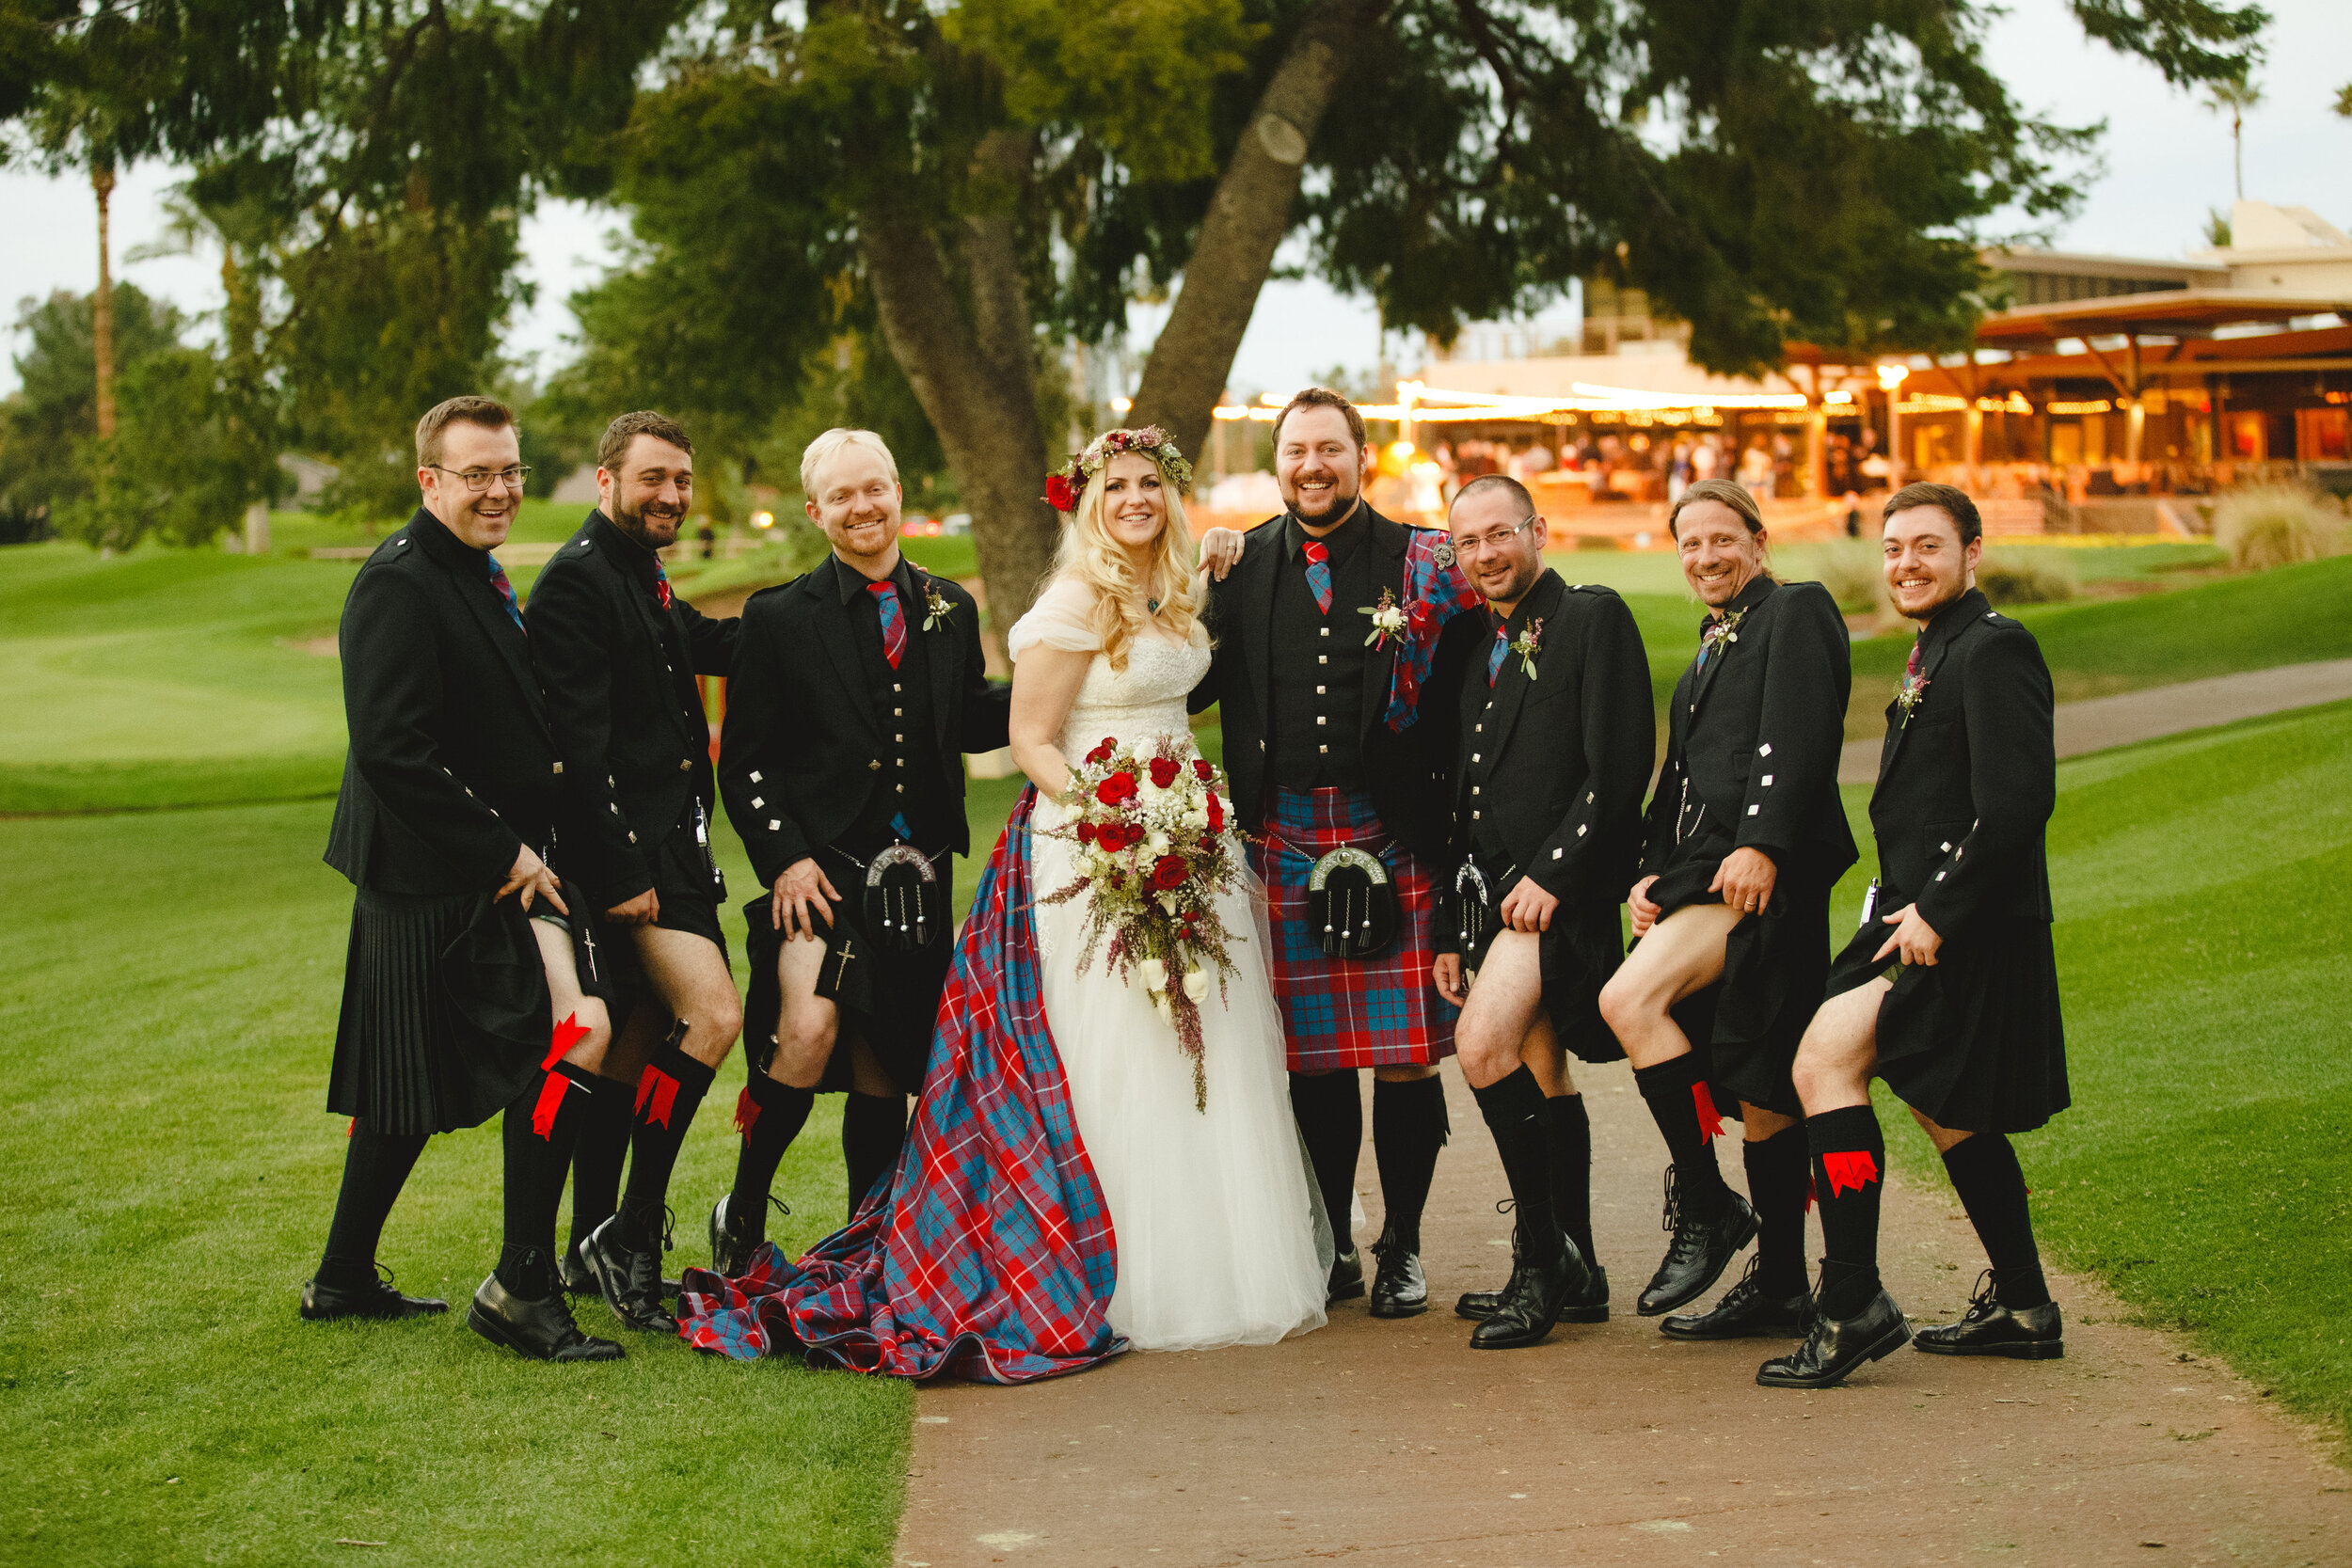 Alternative bride with tartan train with groomsmen wearing kilt highland dress at her cultural alternative wedding.jpg